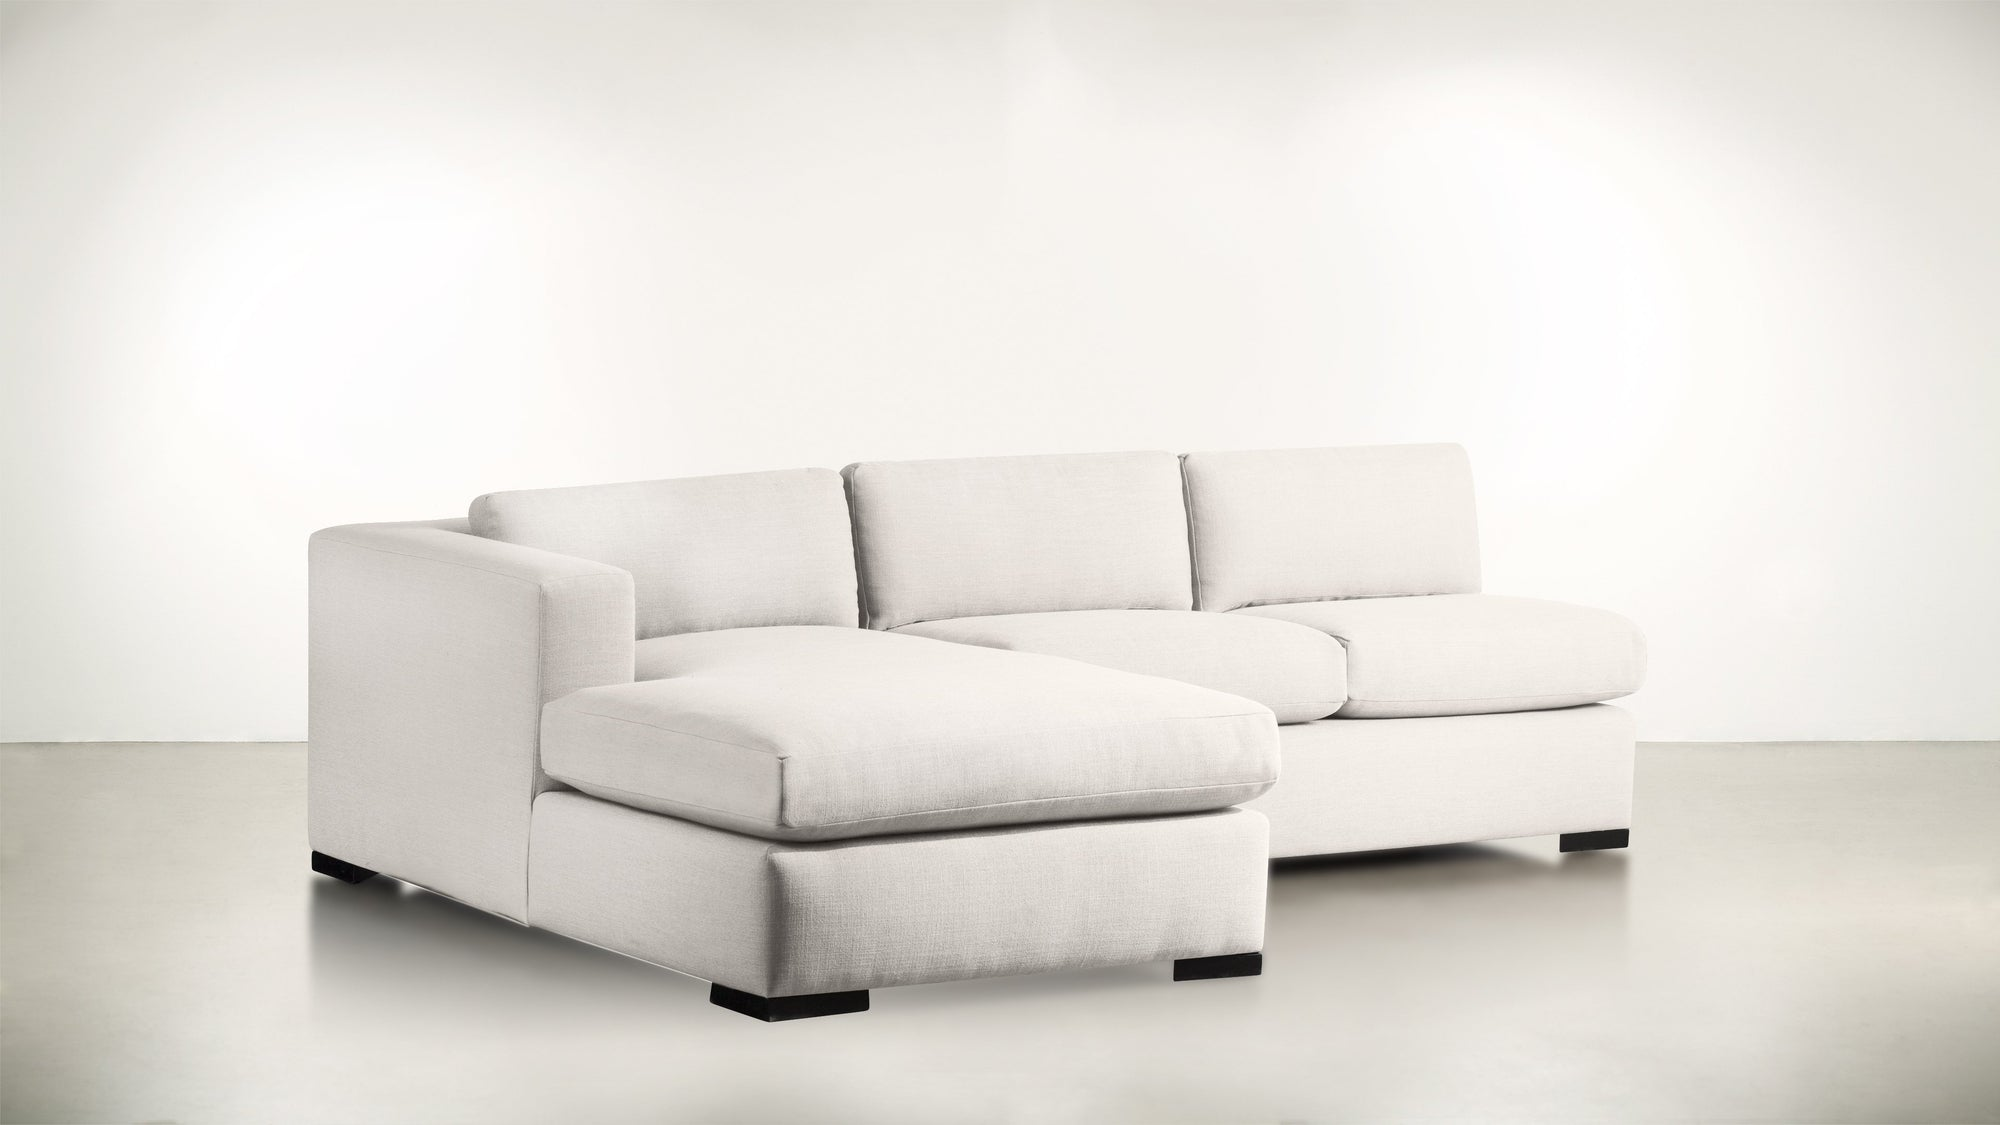 The Trash Talker L Modular Sectional